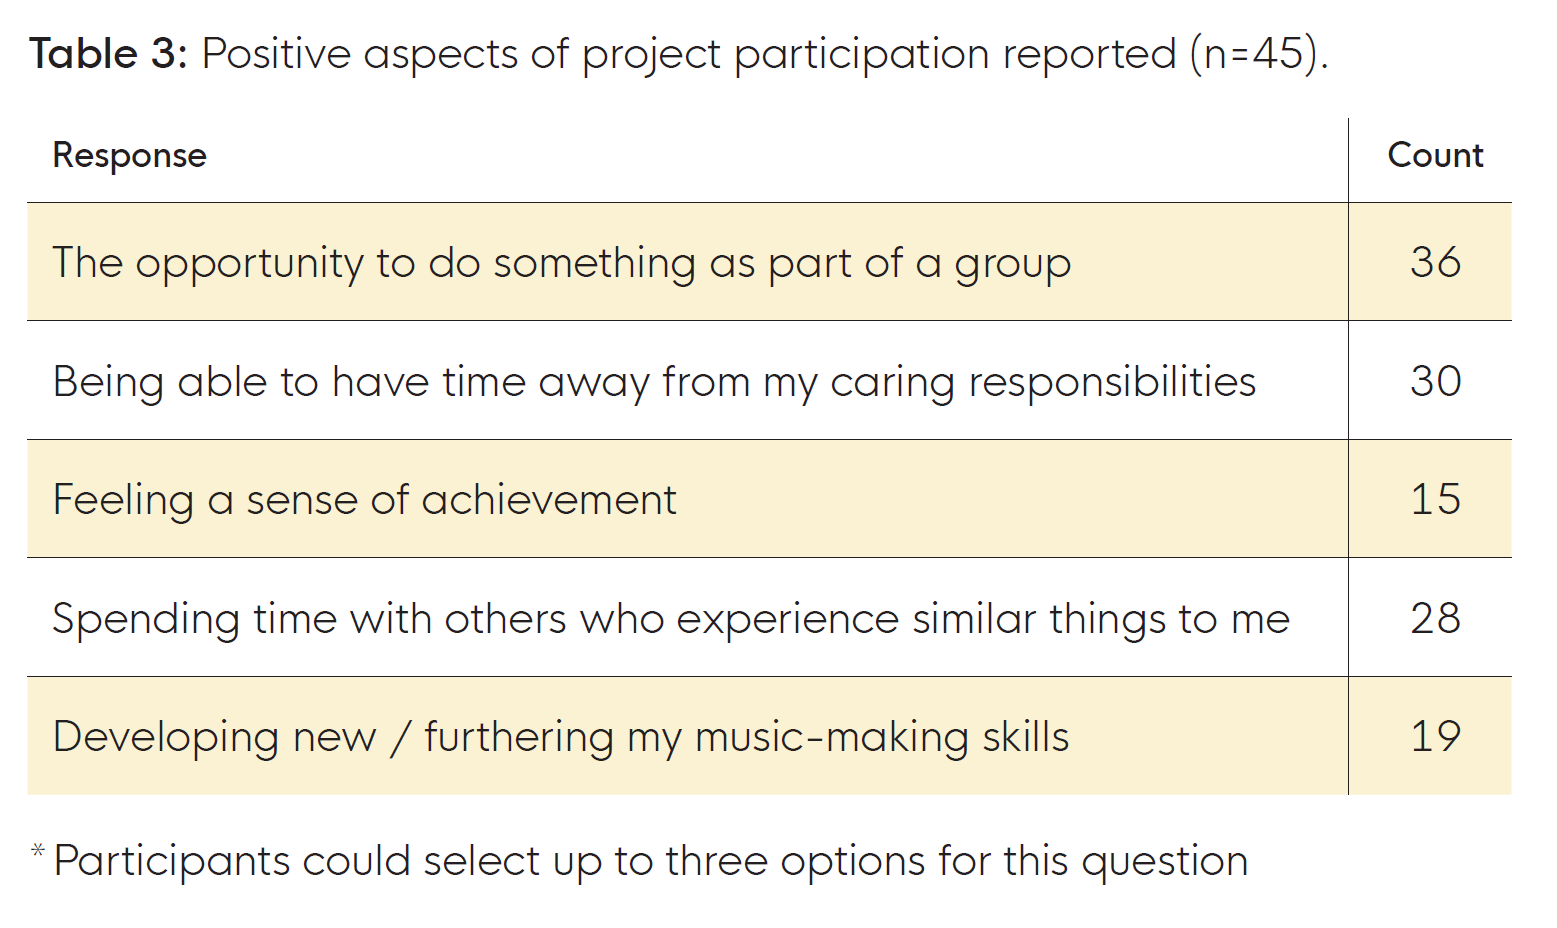 Table 3: Positive aspects of project participation reported